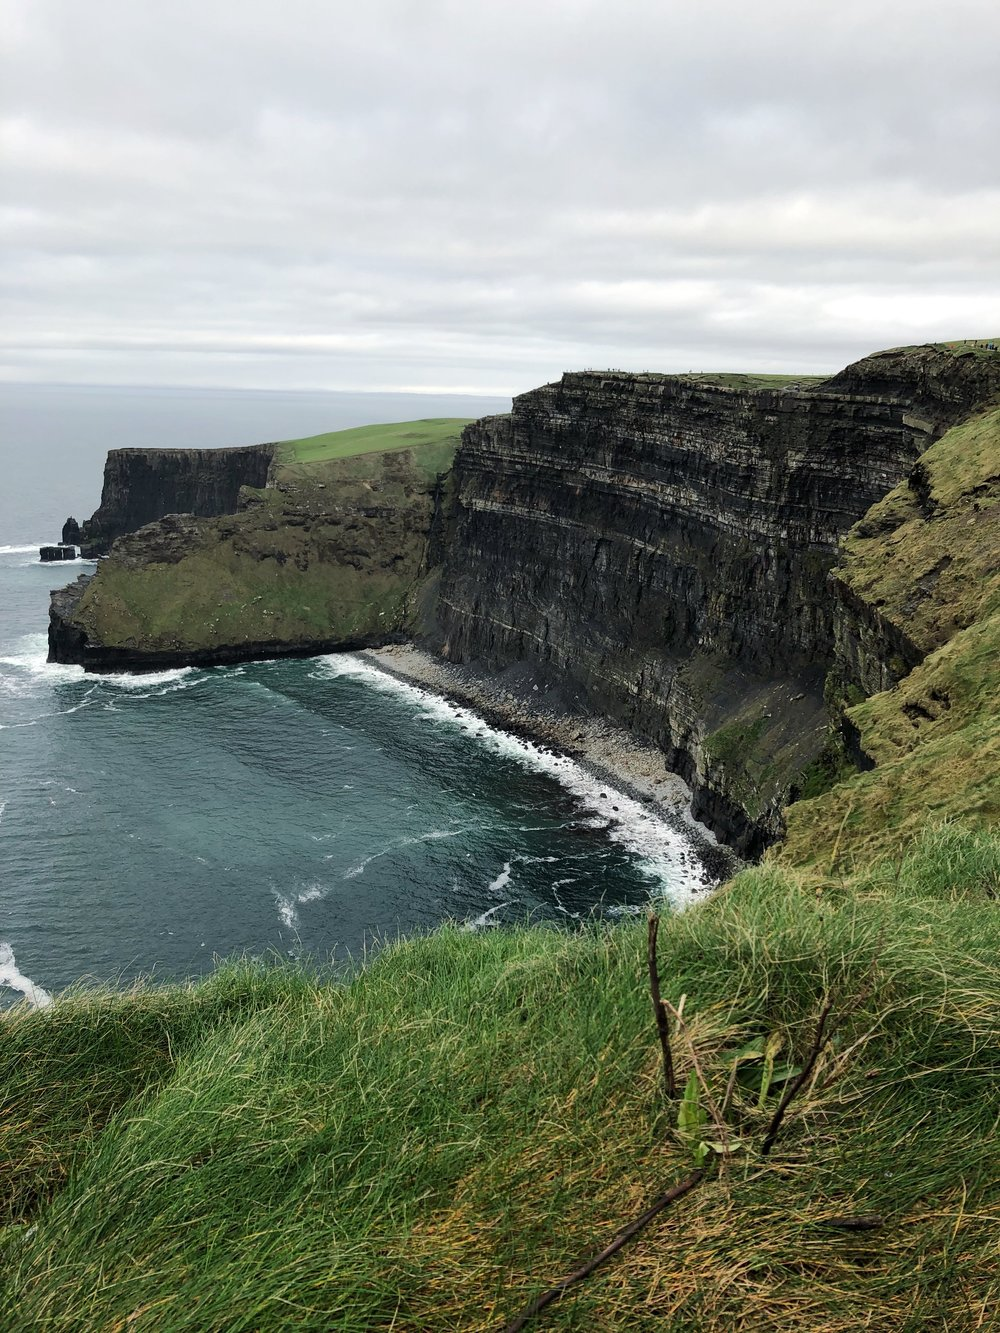 The sheer size of the cliffs is amazing